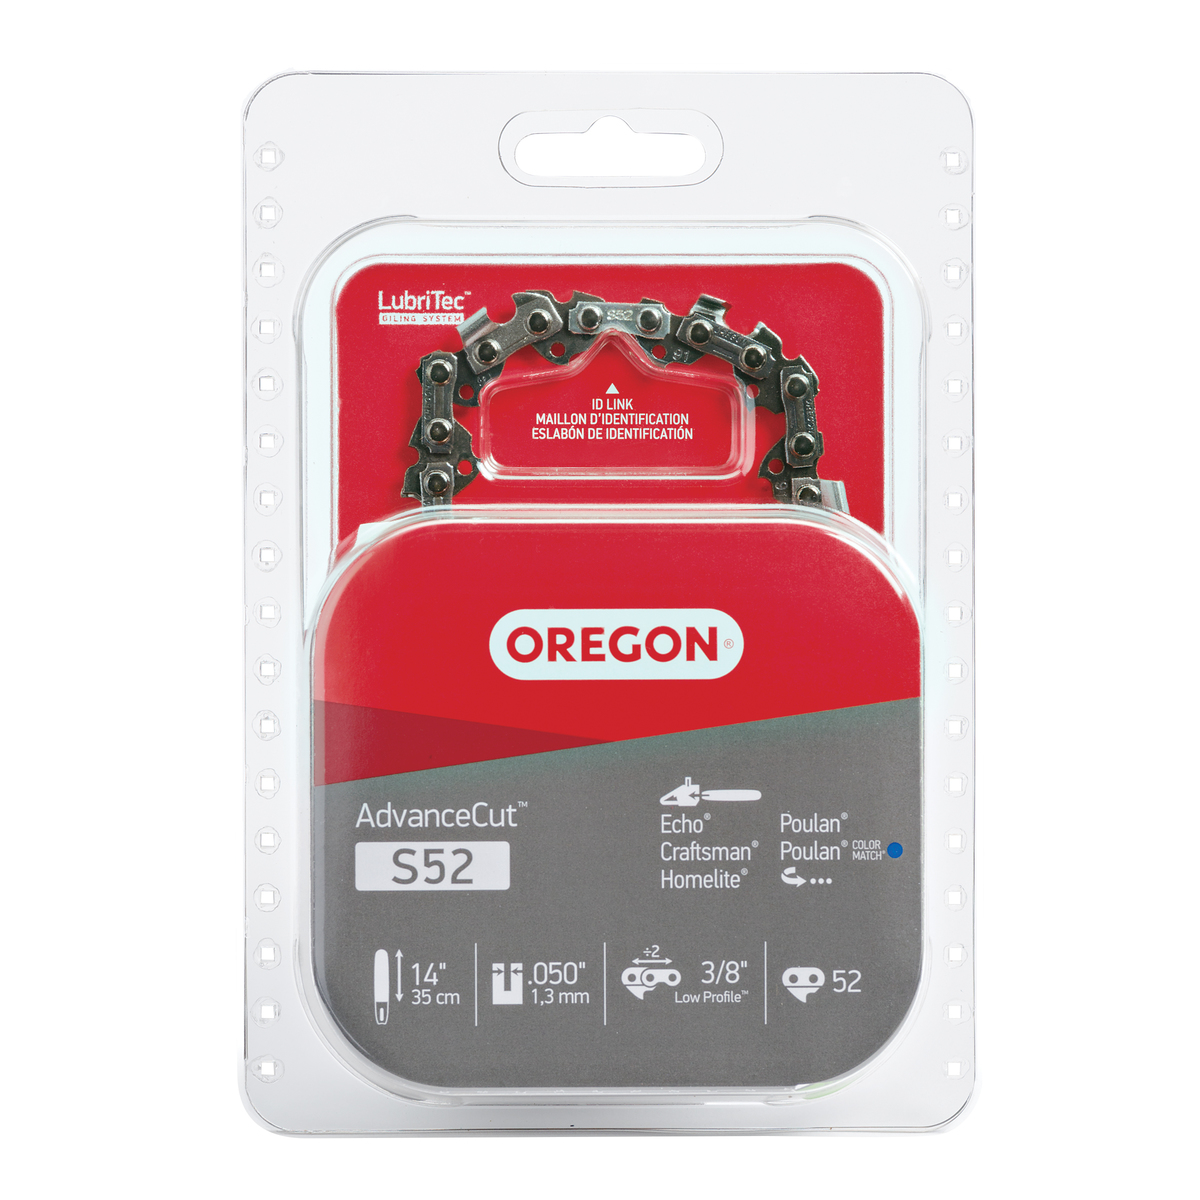 Oregon S52 AdvanceCut™ Saw Chain, 14""